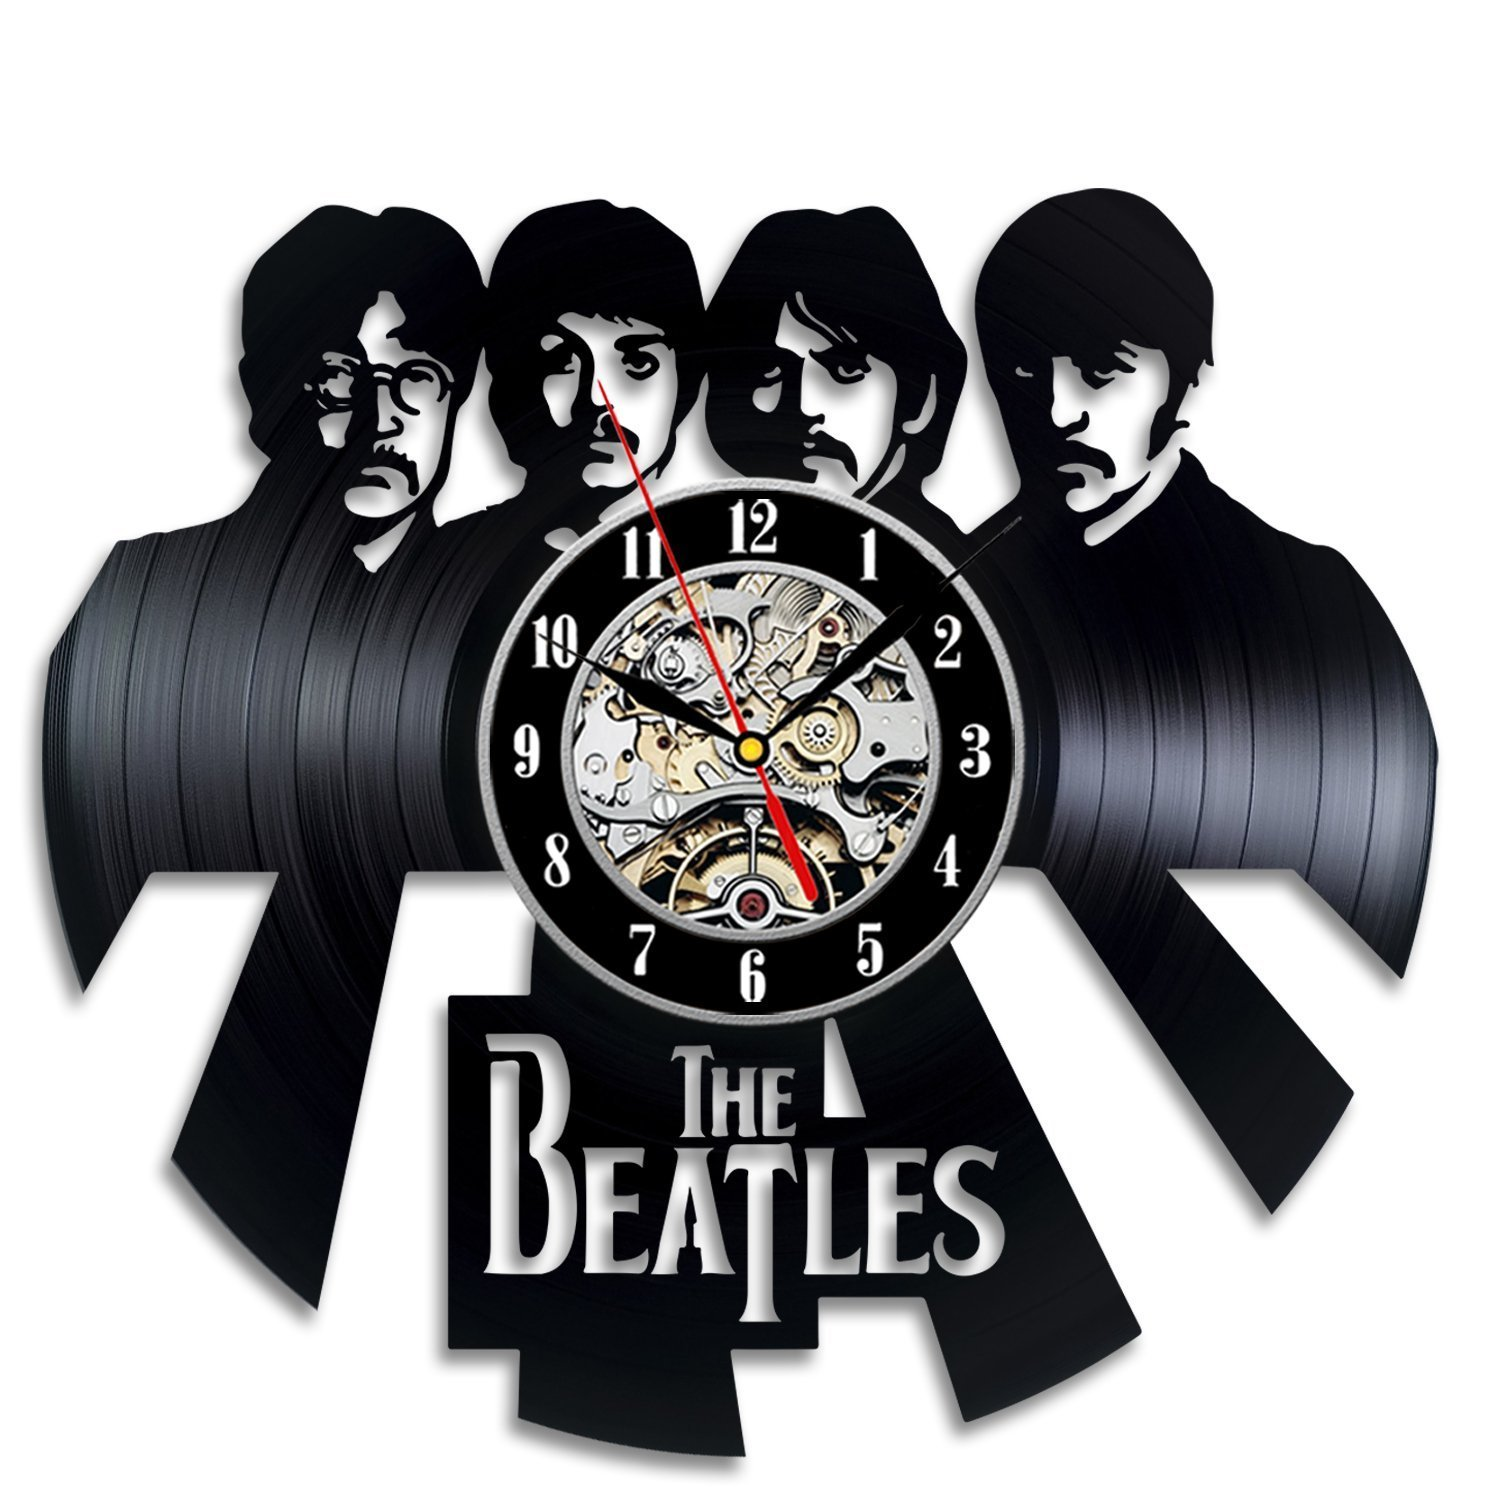 The Beatles Vinyl Wall Clock - Record Vintage Decoration